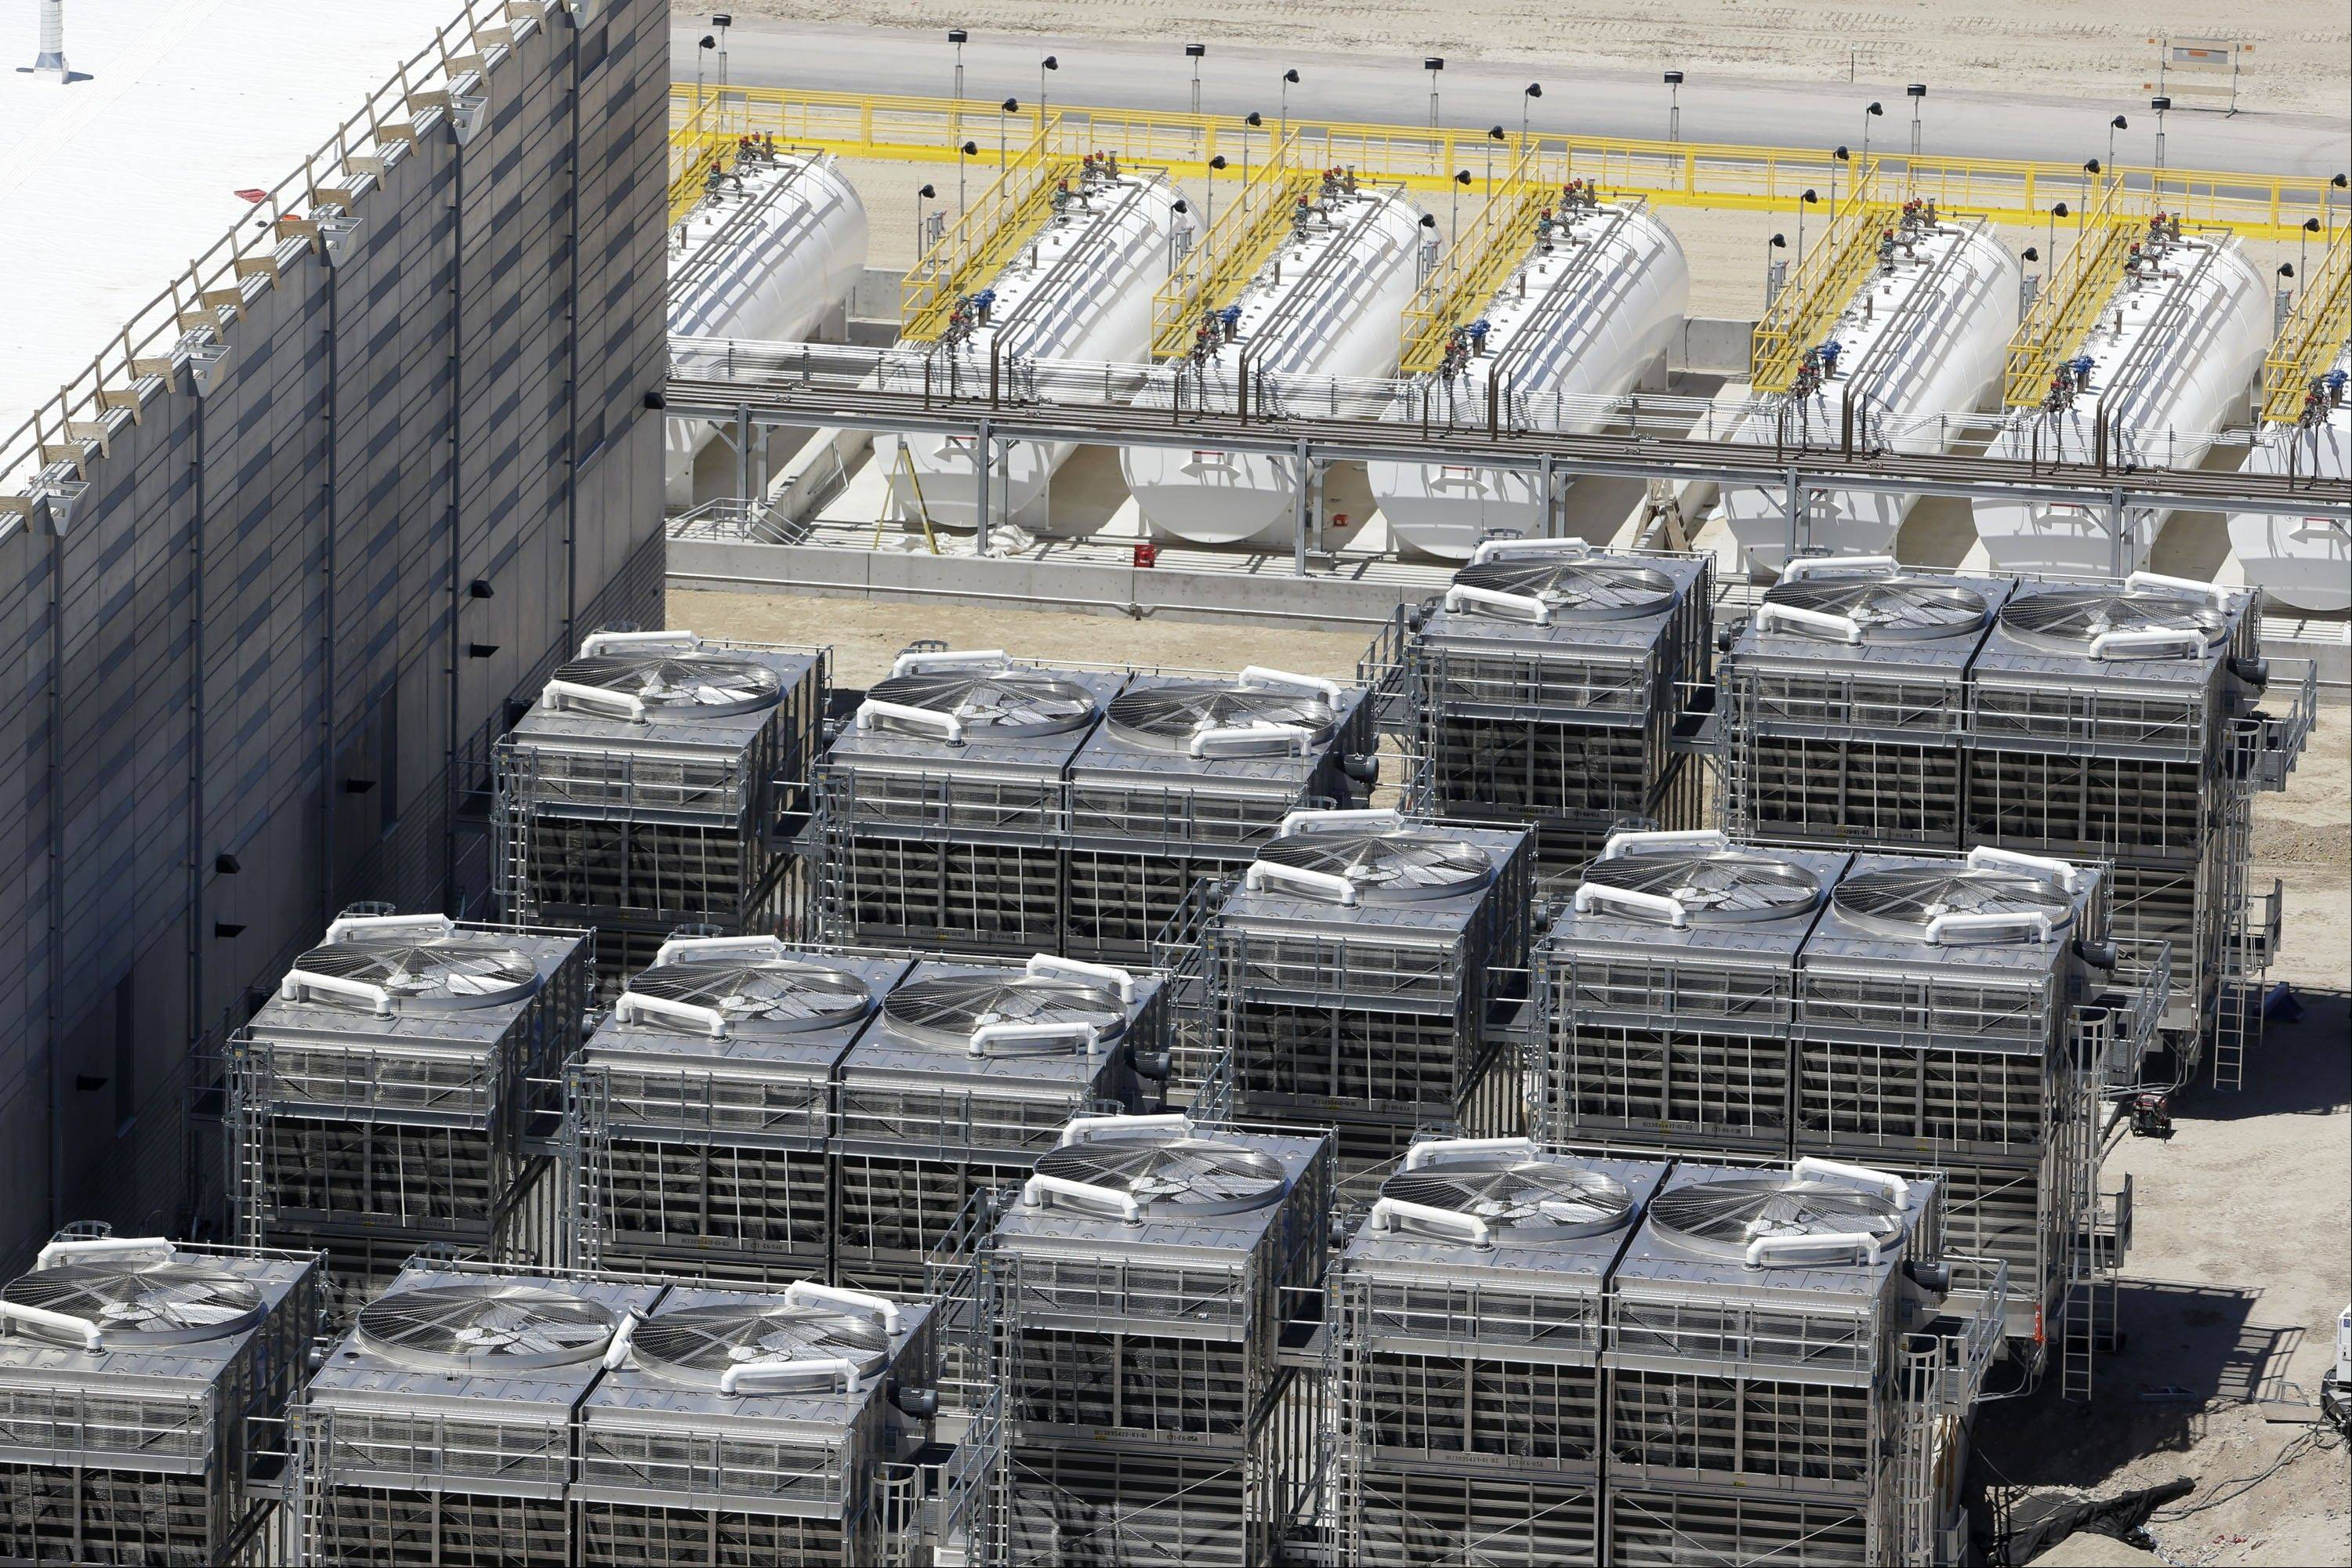 Associated Press/June 6, 2013 An aerial view of the cooling units at the NSA's Utah Data Center in Bluffdale, Utah.